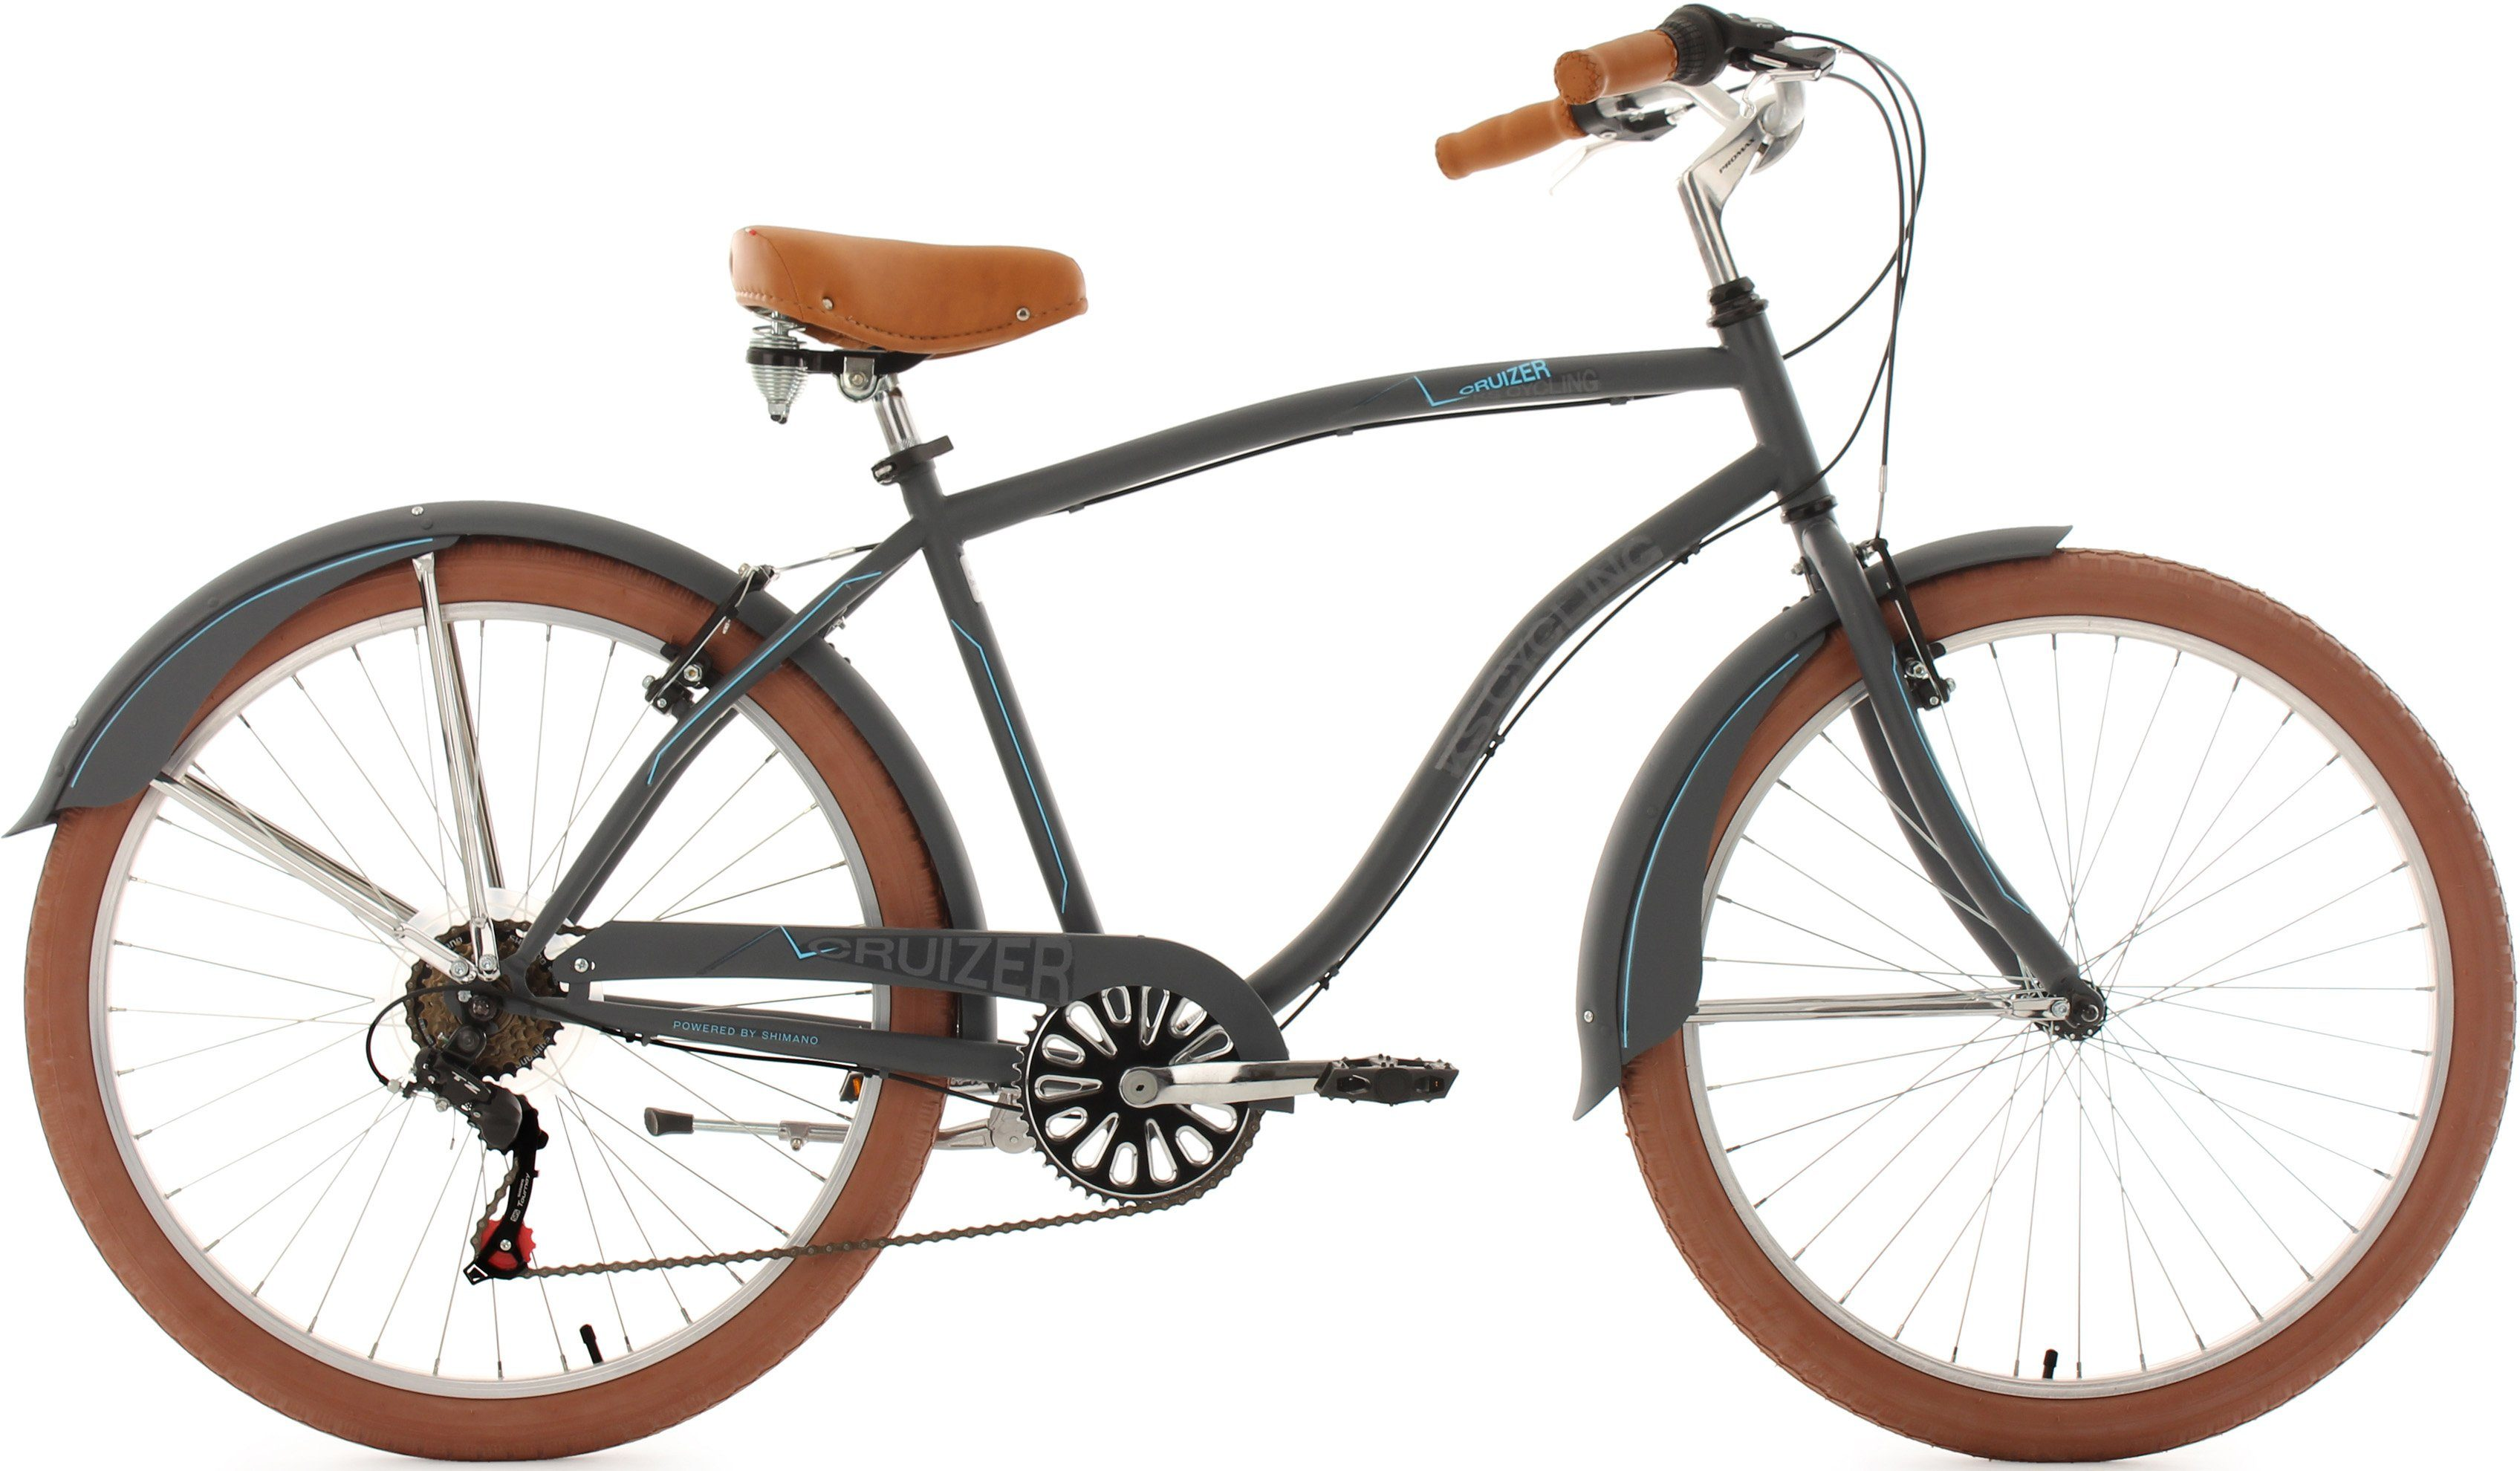 KS Cycling Beachcruiser Herren, 26 Zoll, matt-anthrazit, 6 Gang-Kettenschaltung, »Cruizer«